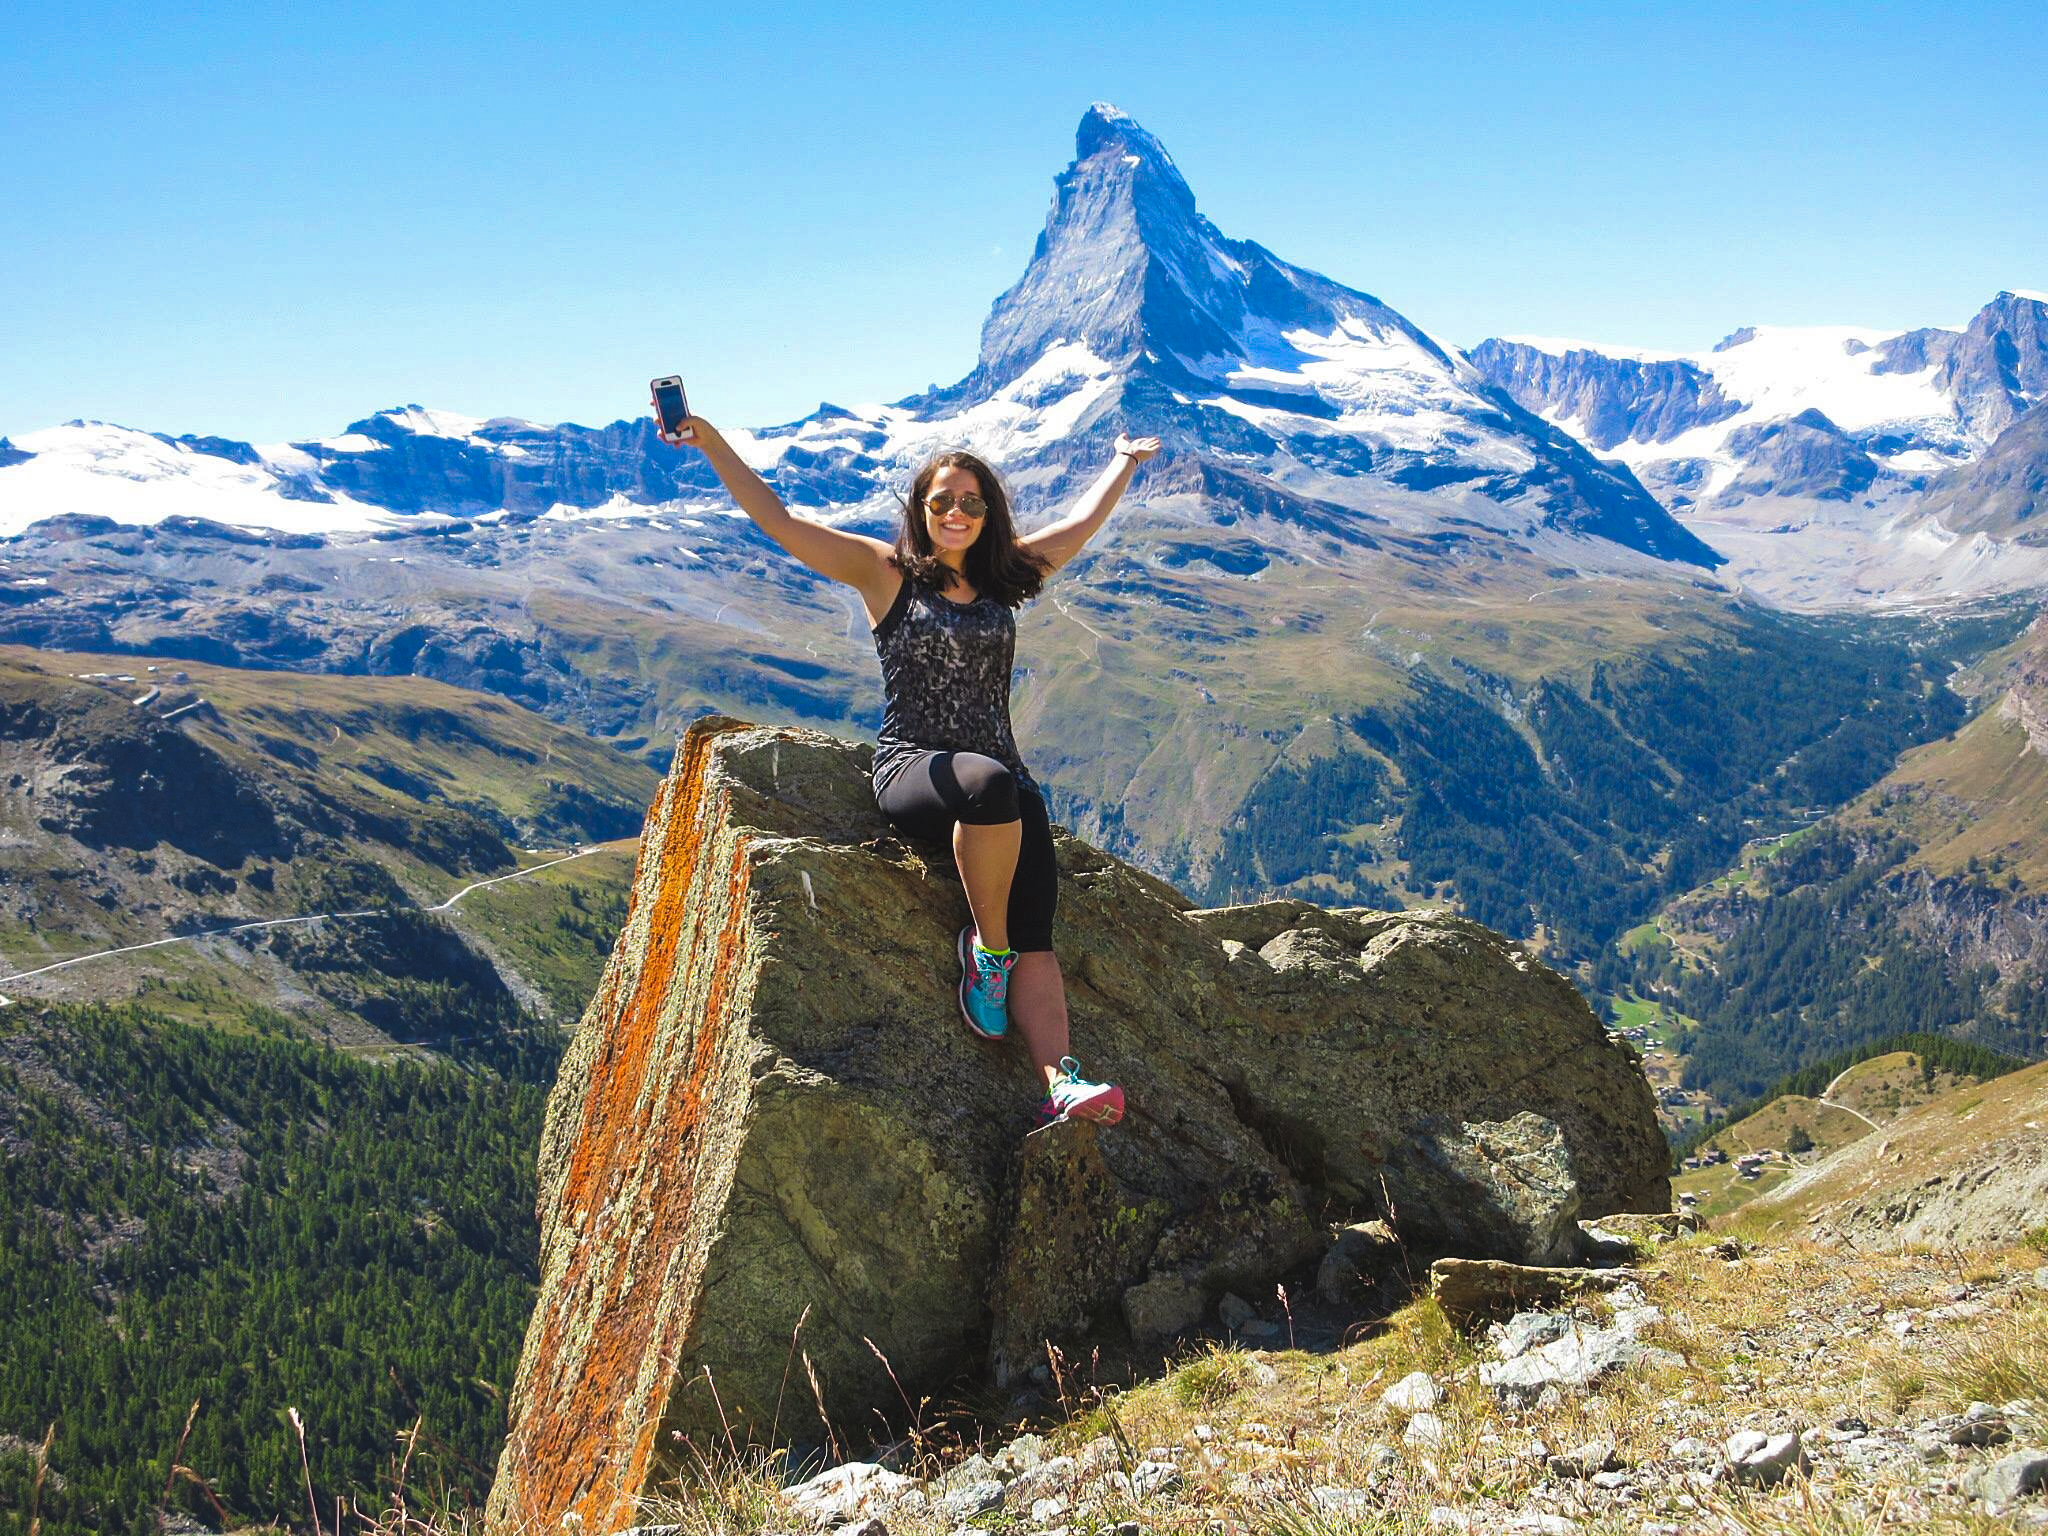 Agribusiness student, Caroline Phillips poses in front of the Matterhorn during her exchange semester in Switzerland.